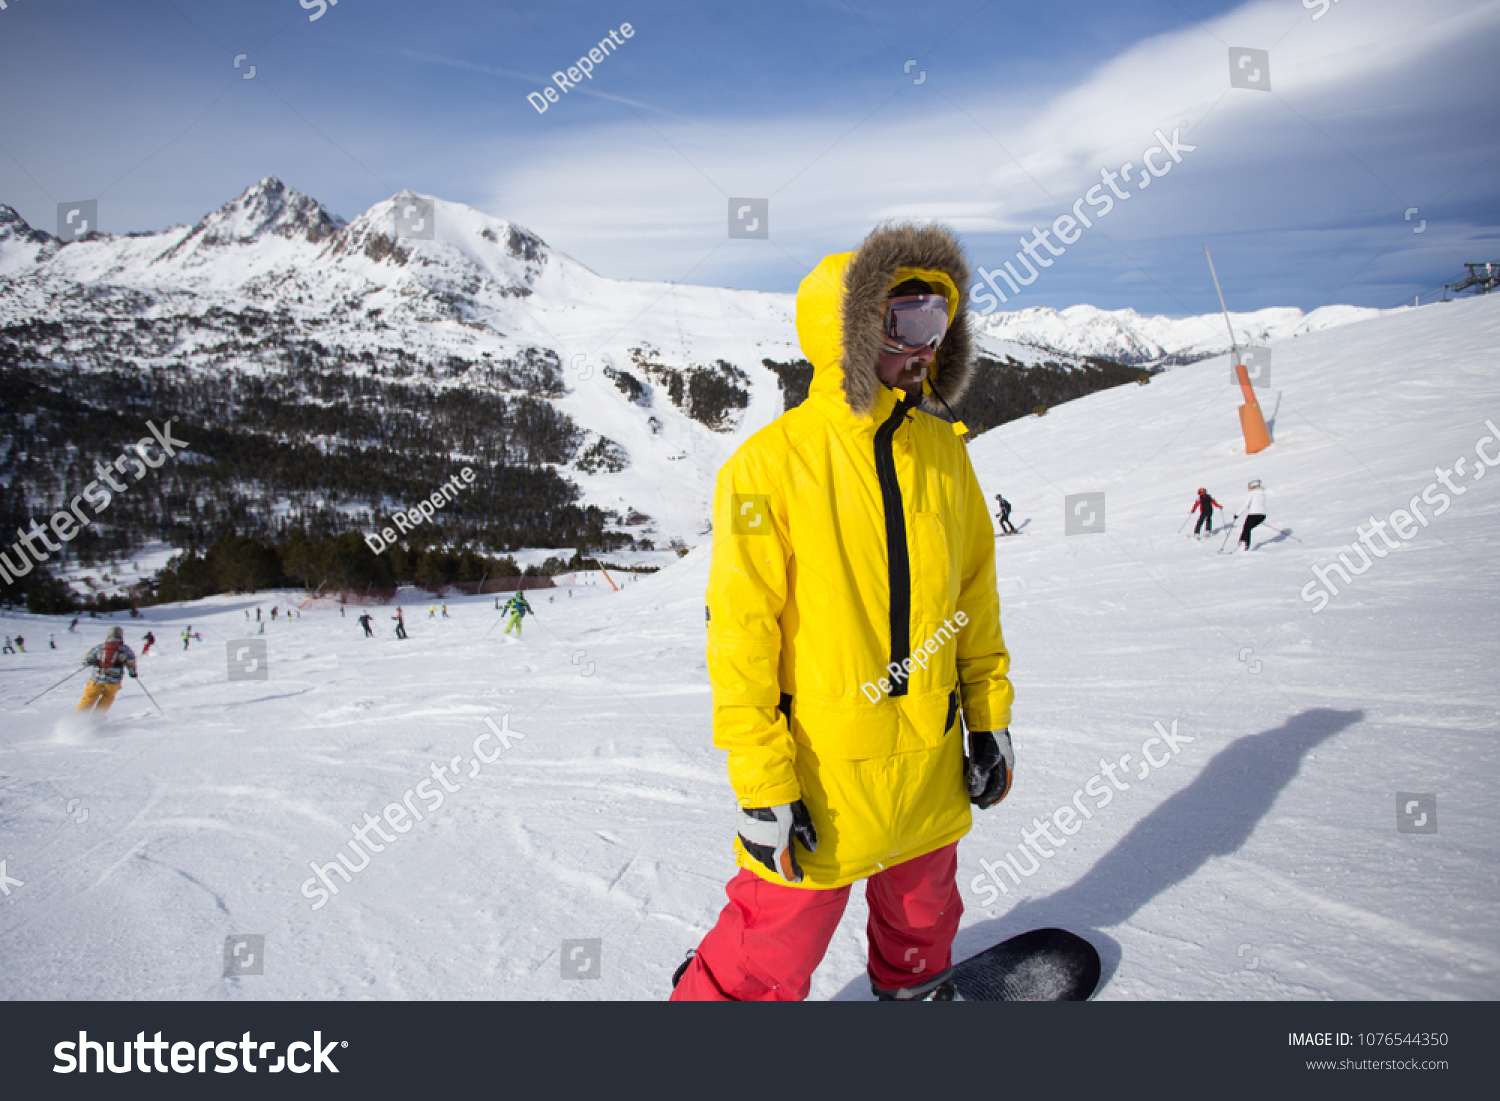 Cool and trendy young professional athlete or amateur snowboard rider  stands on top of hill or